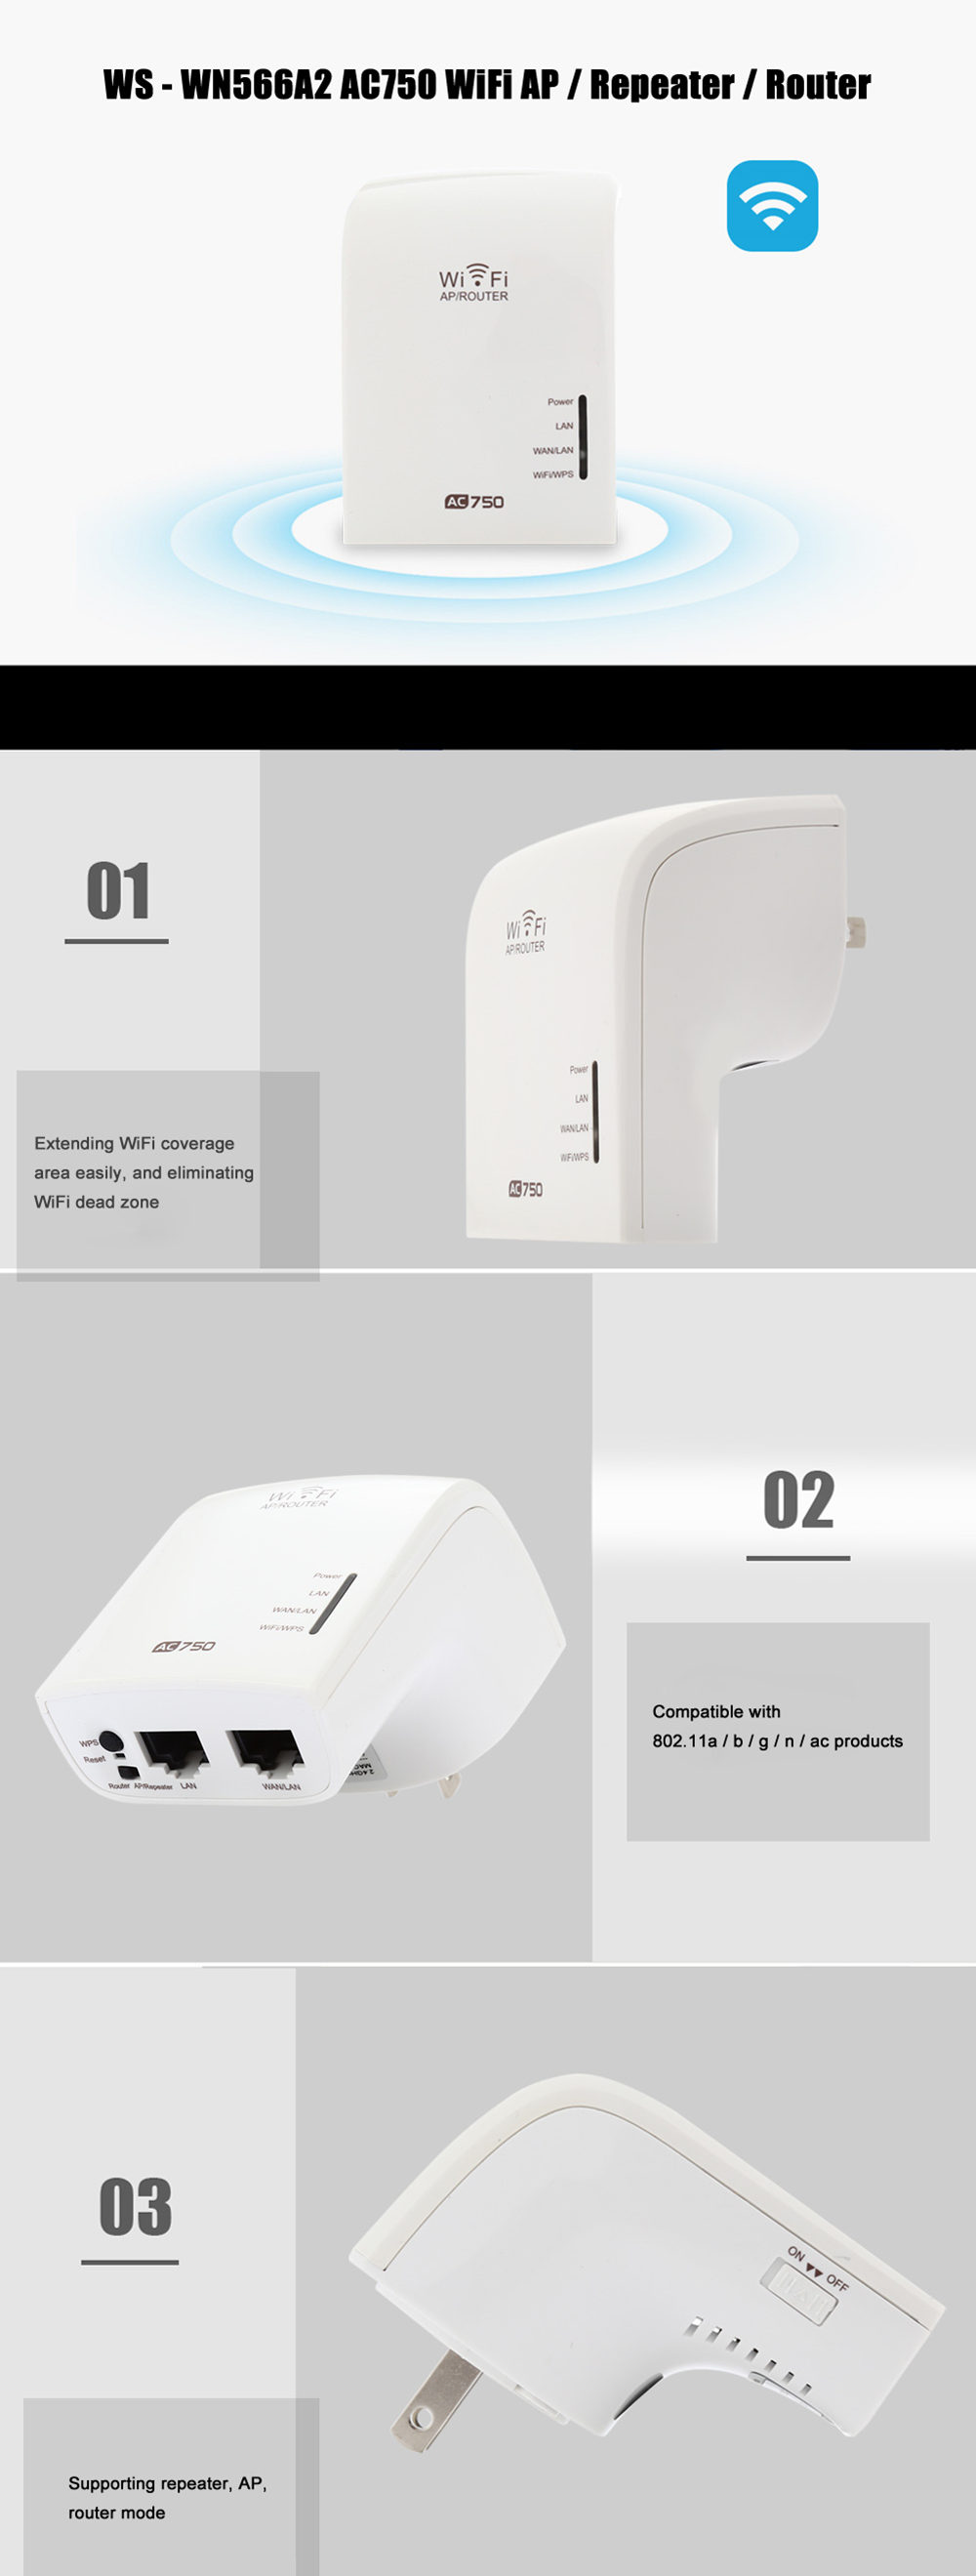 WS - WN566A2 AC750 WiFi AP / Repeater / Router Wireless Network Device